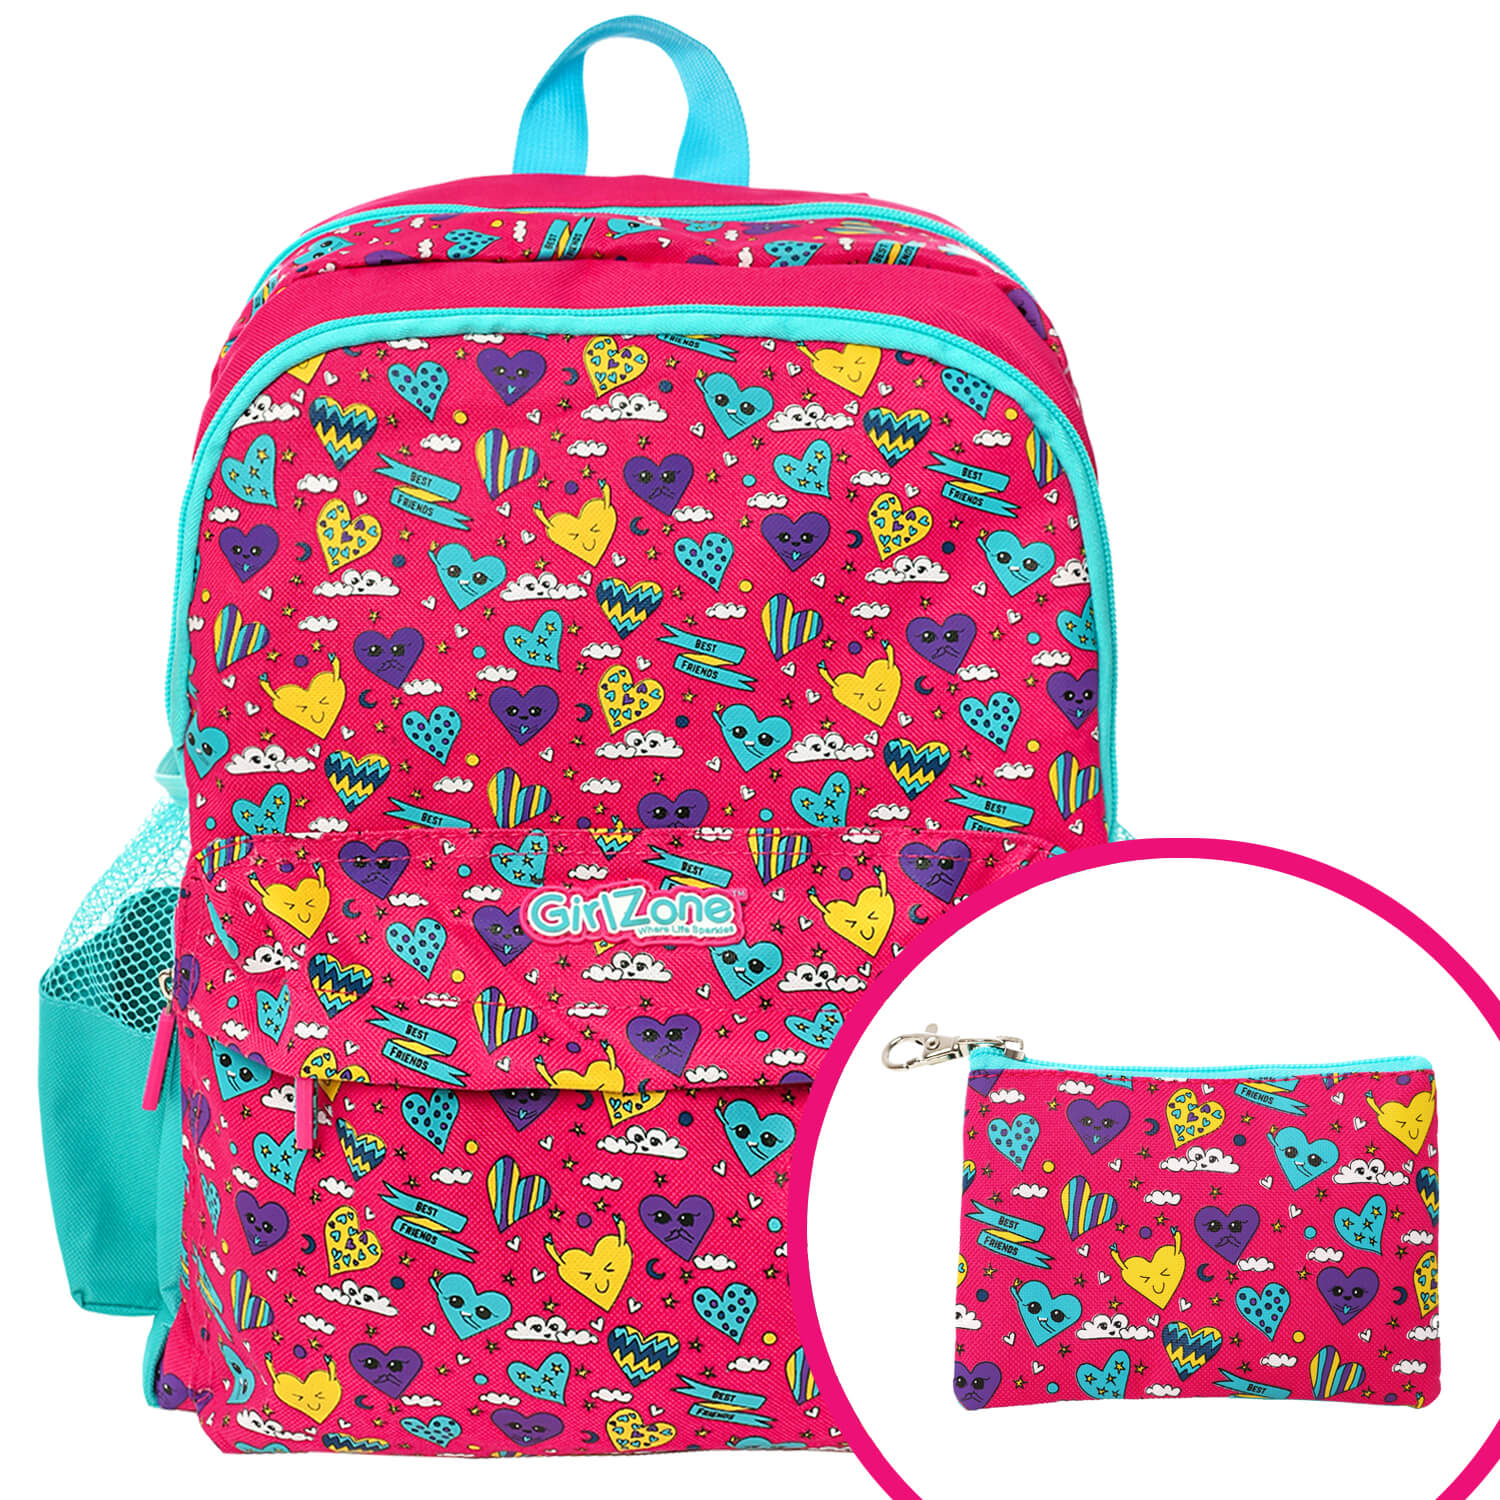 GirlZone Pink Backpack for girls